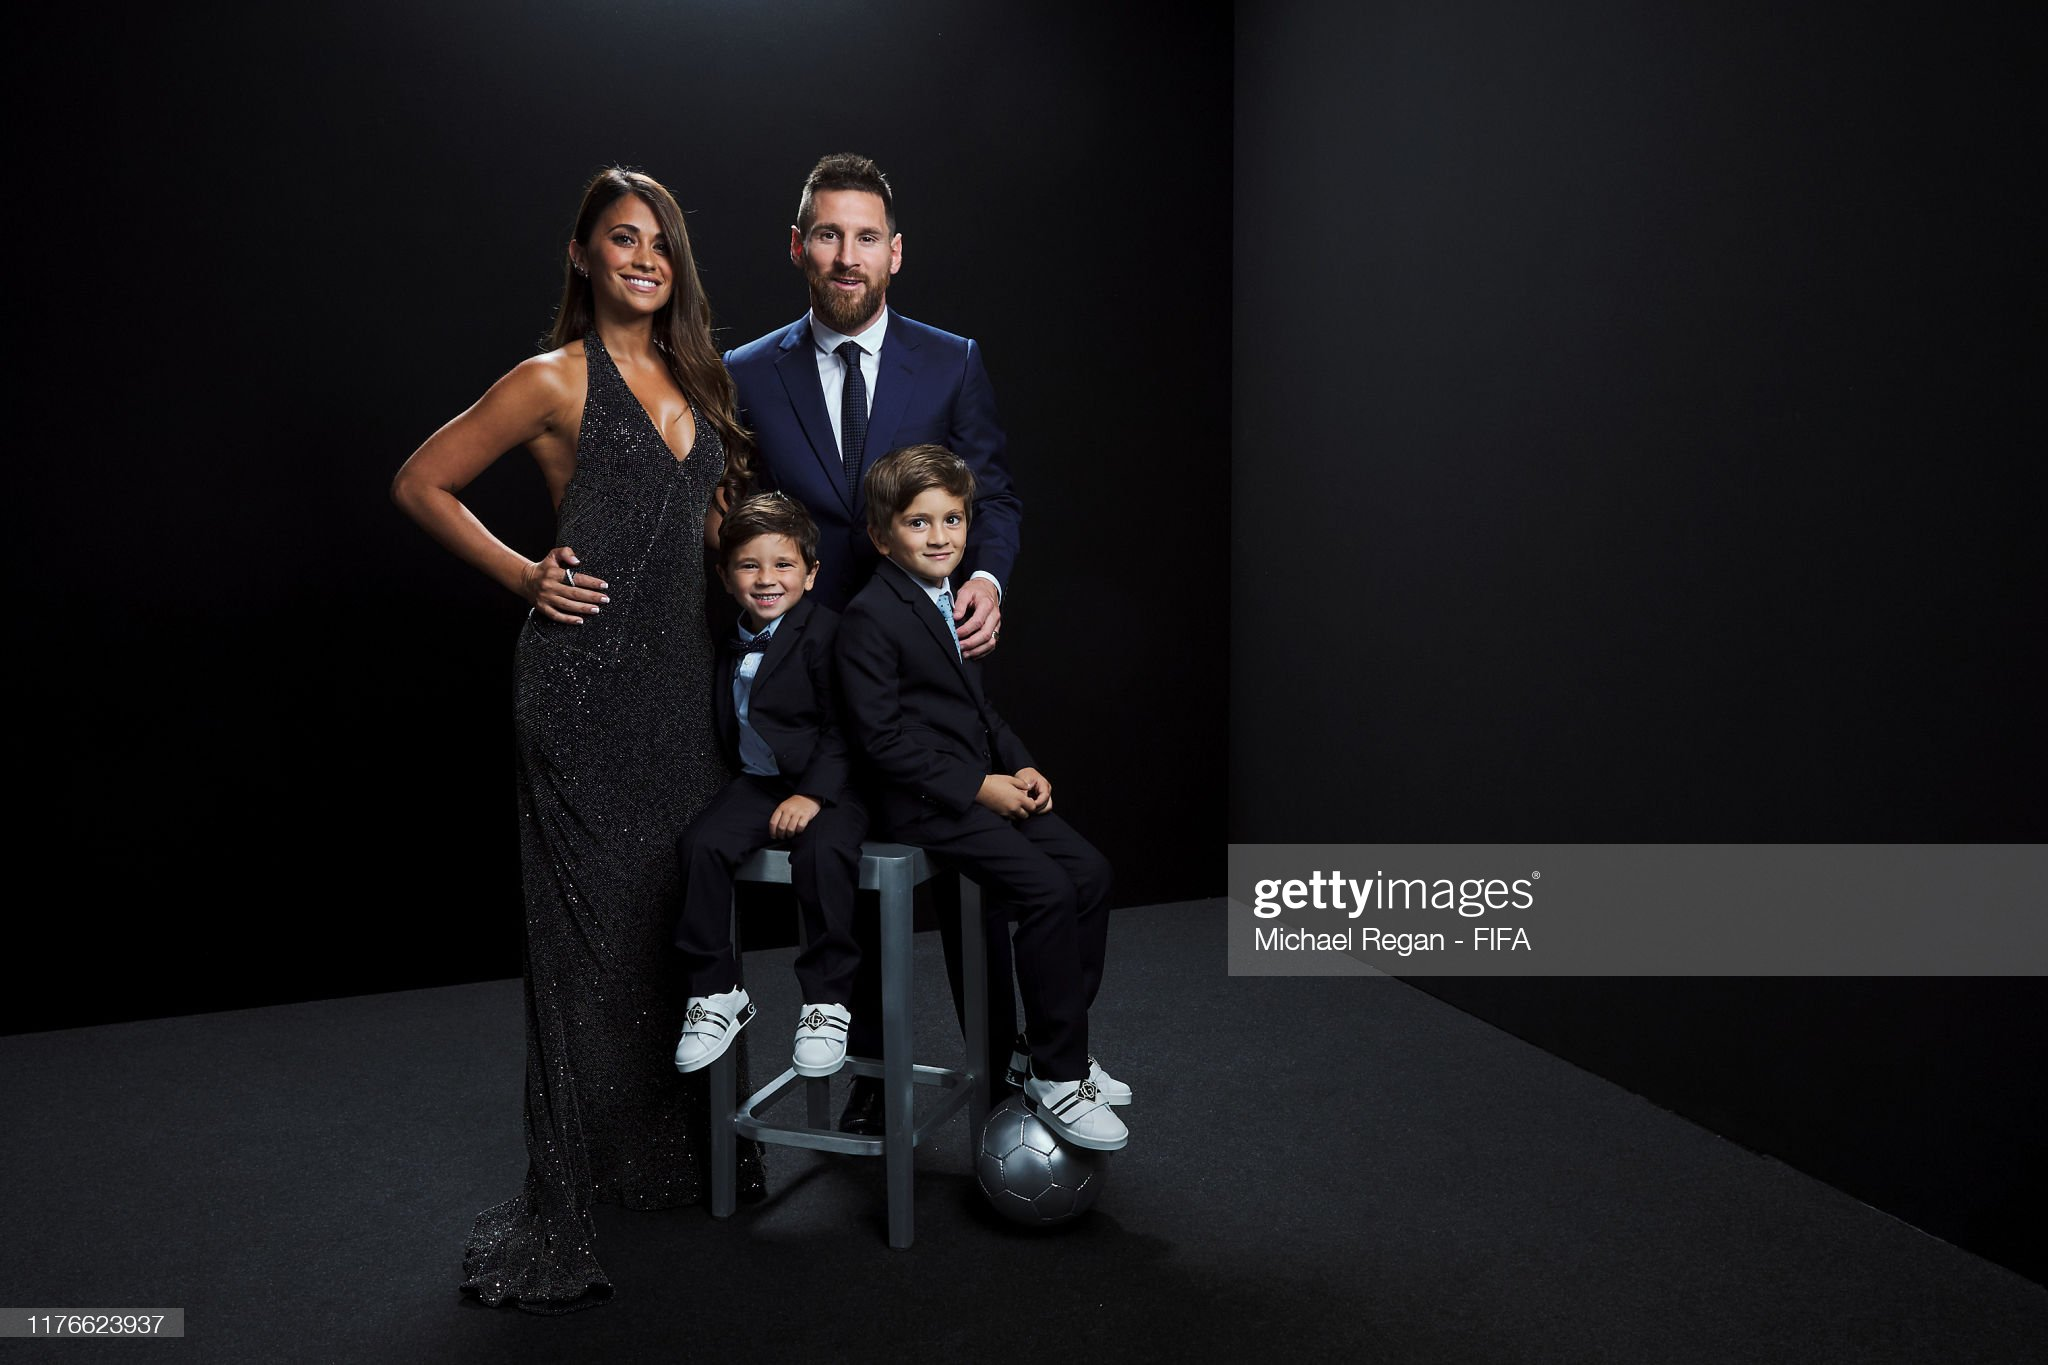 The Best FIFA Football Awards 2019 The-best-fifa-mens-player-award-lionel-messi-of-fc-barcelona-and-a-picture-id1176623937?s=2048x2048